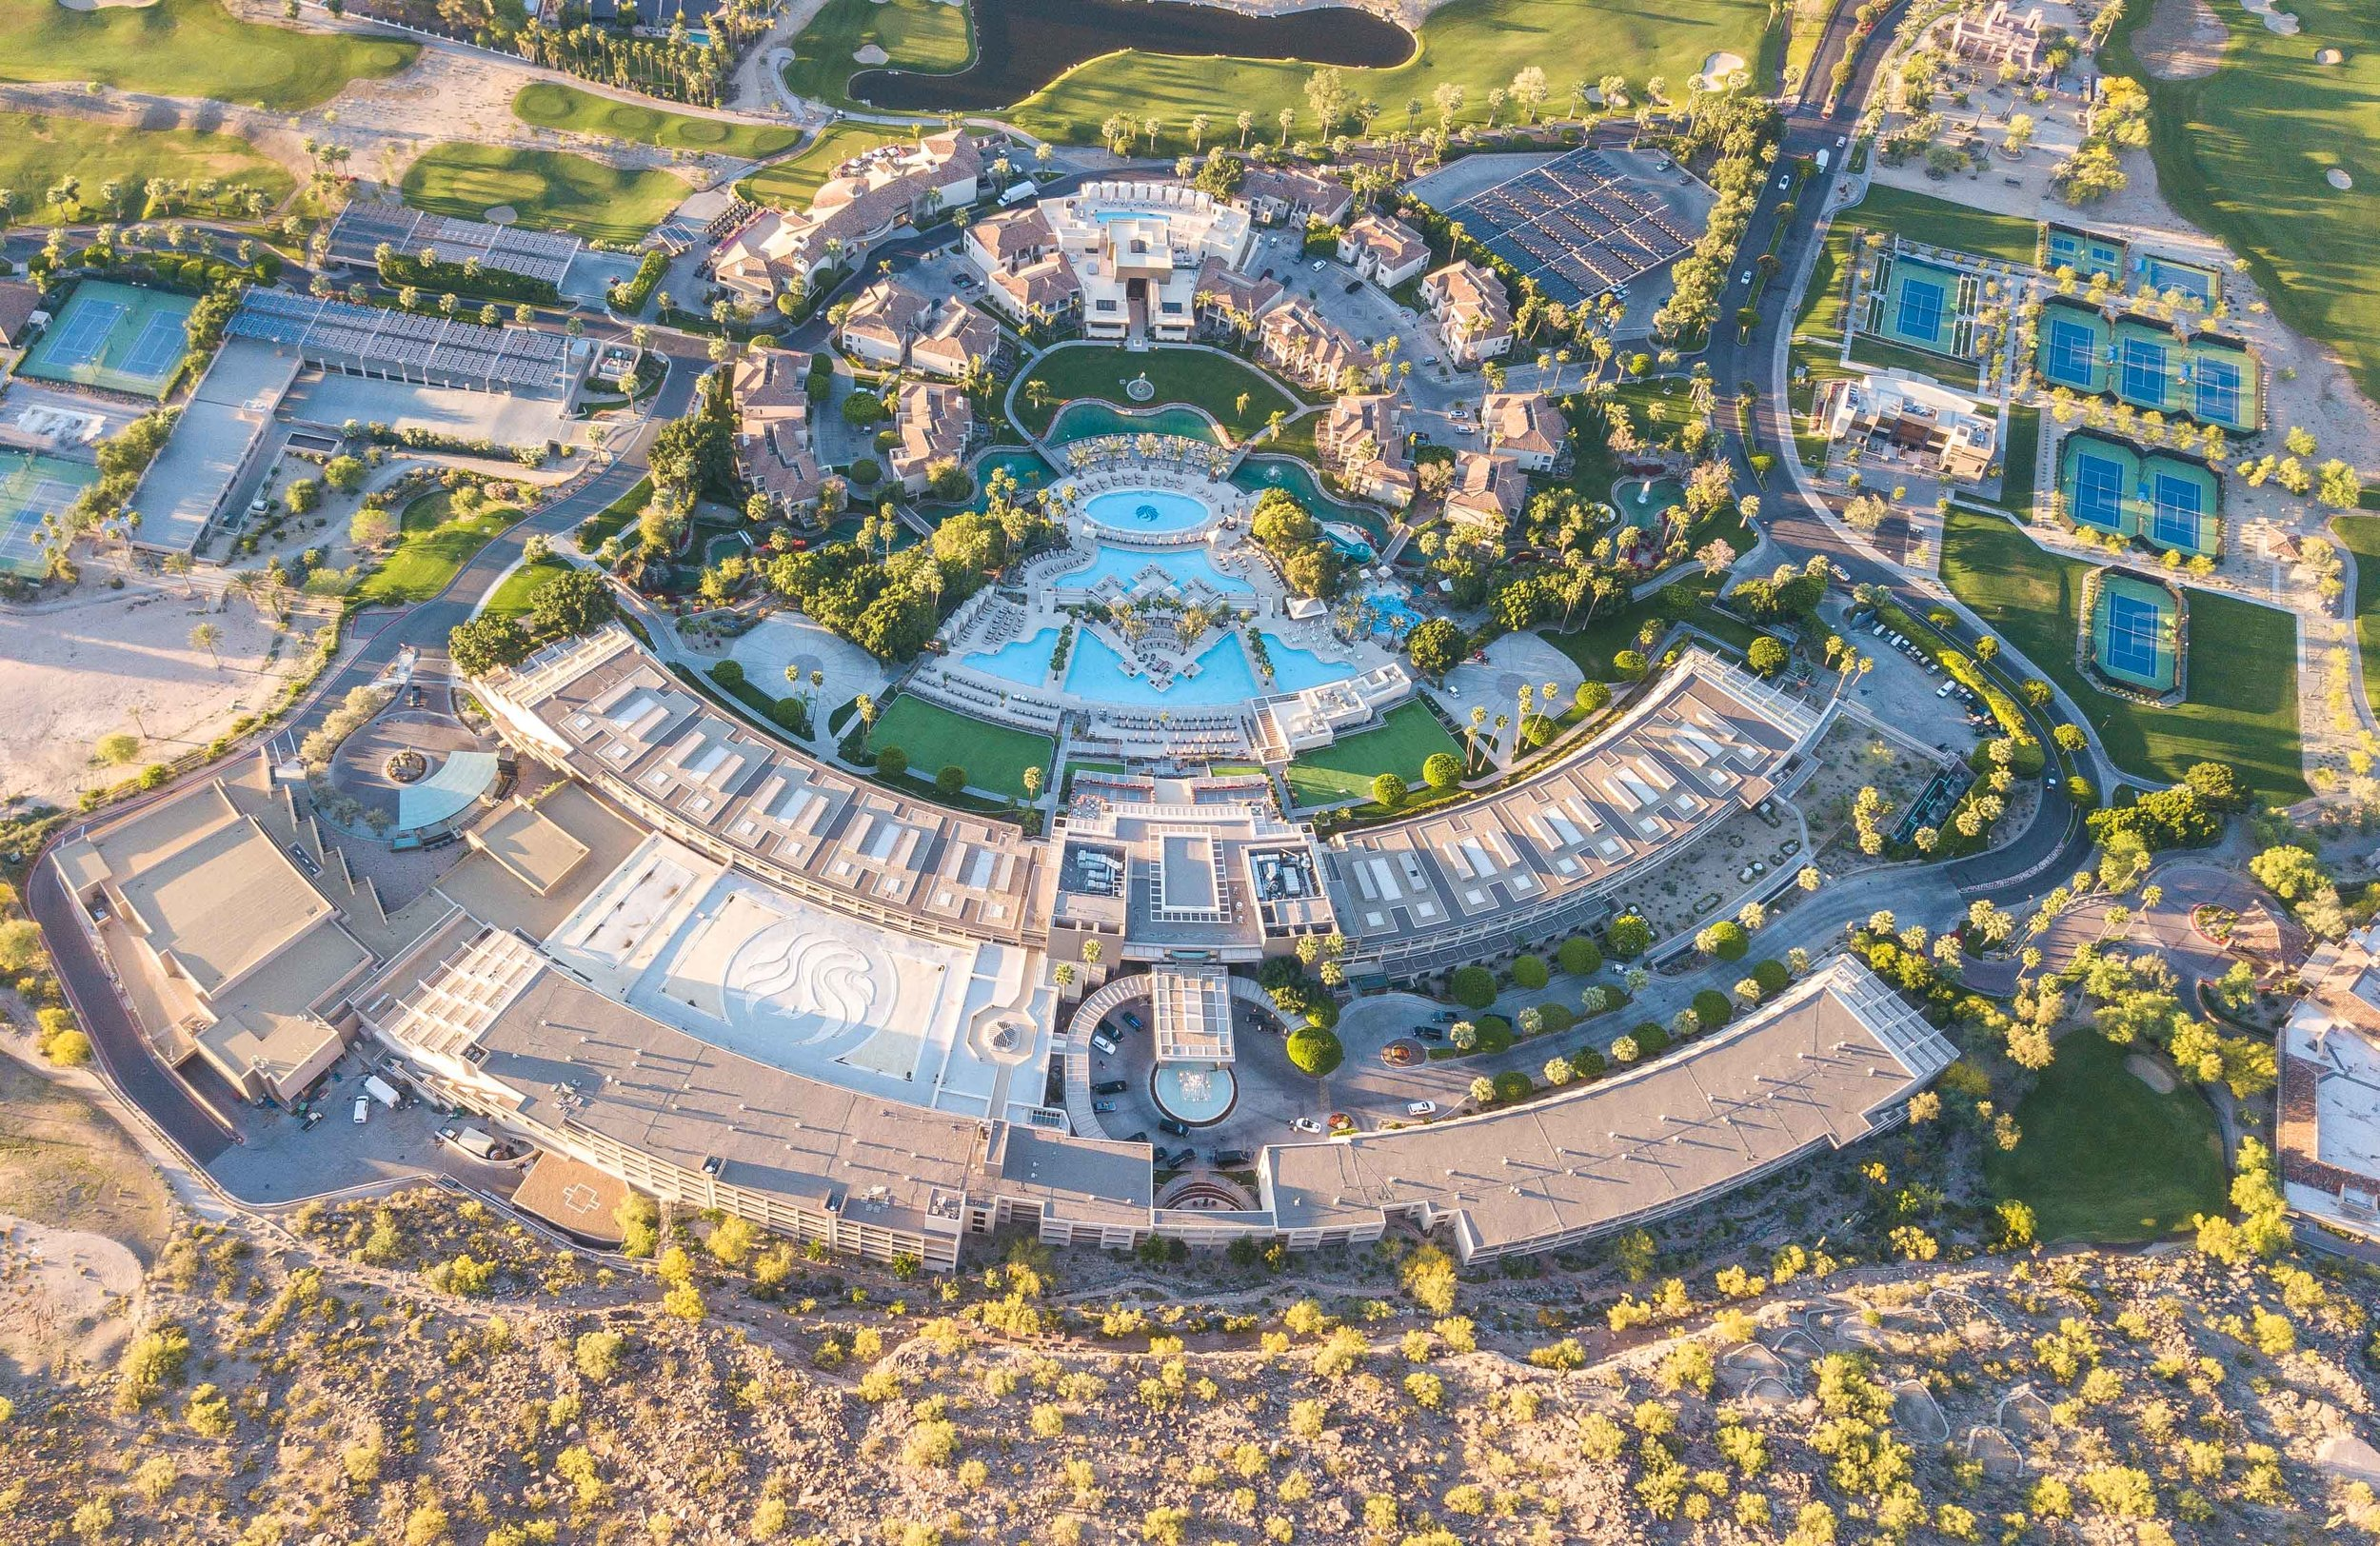 The AAA 5-Diamond Phoenician resort